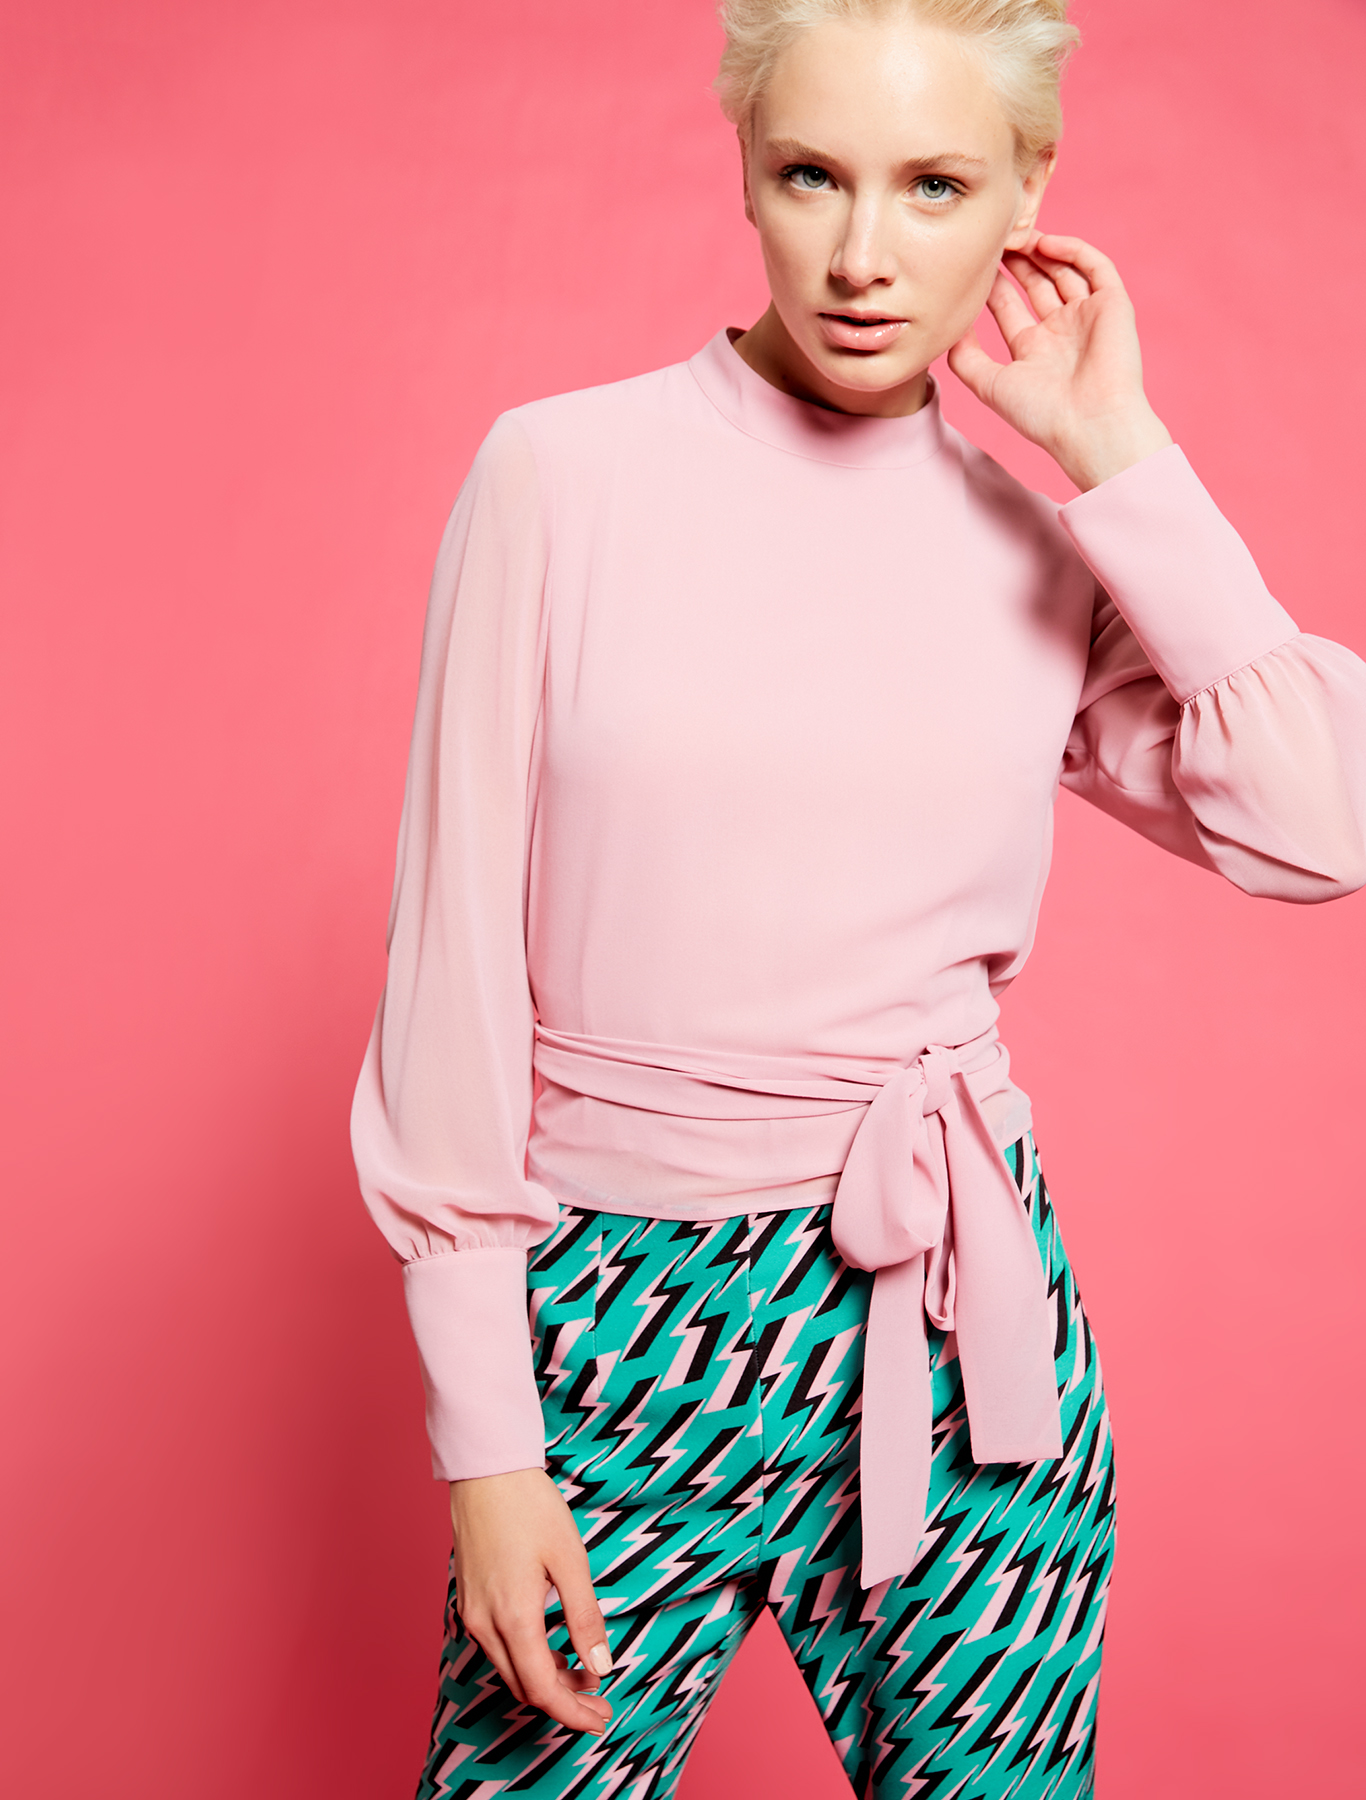 Electric Feel by Spiros Halaris Georgette blouse - pink - pennyblack